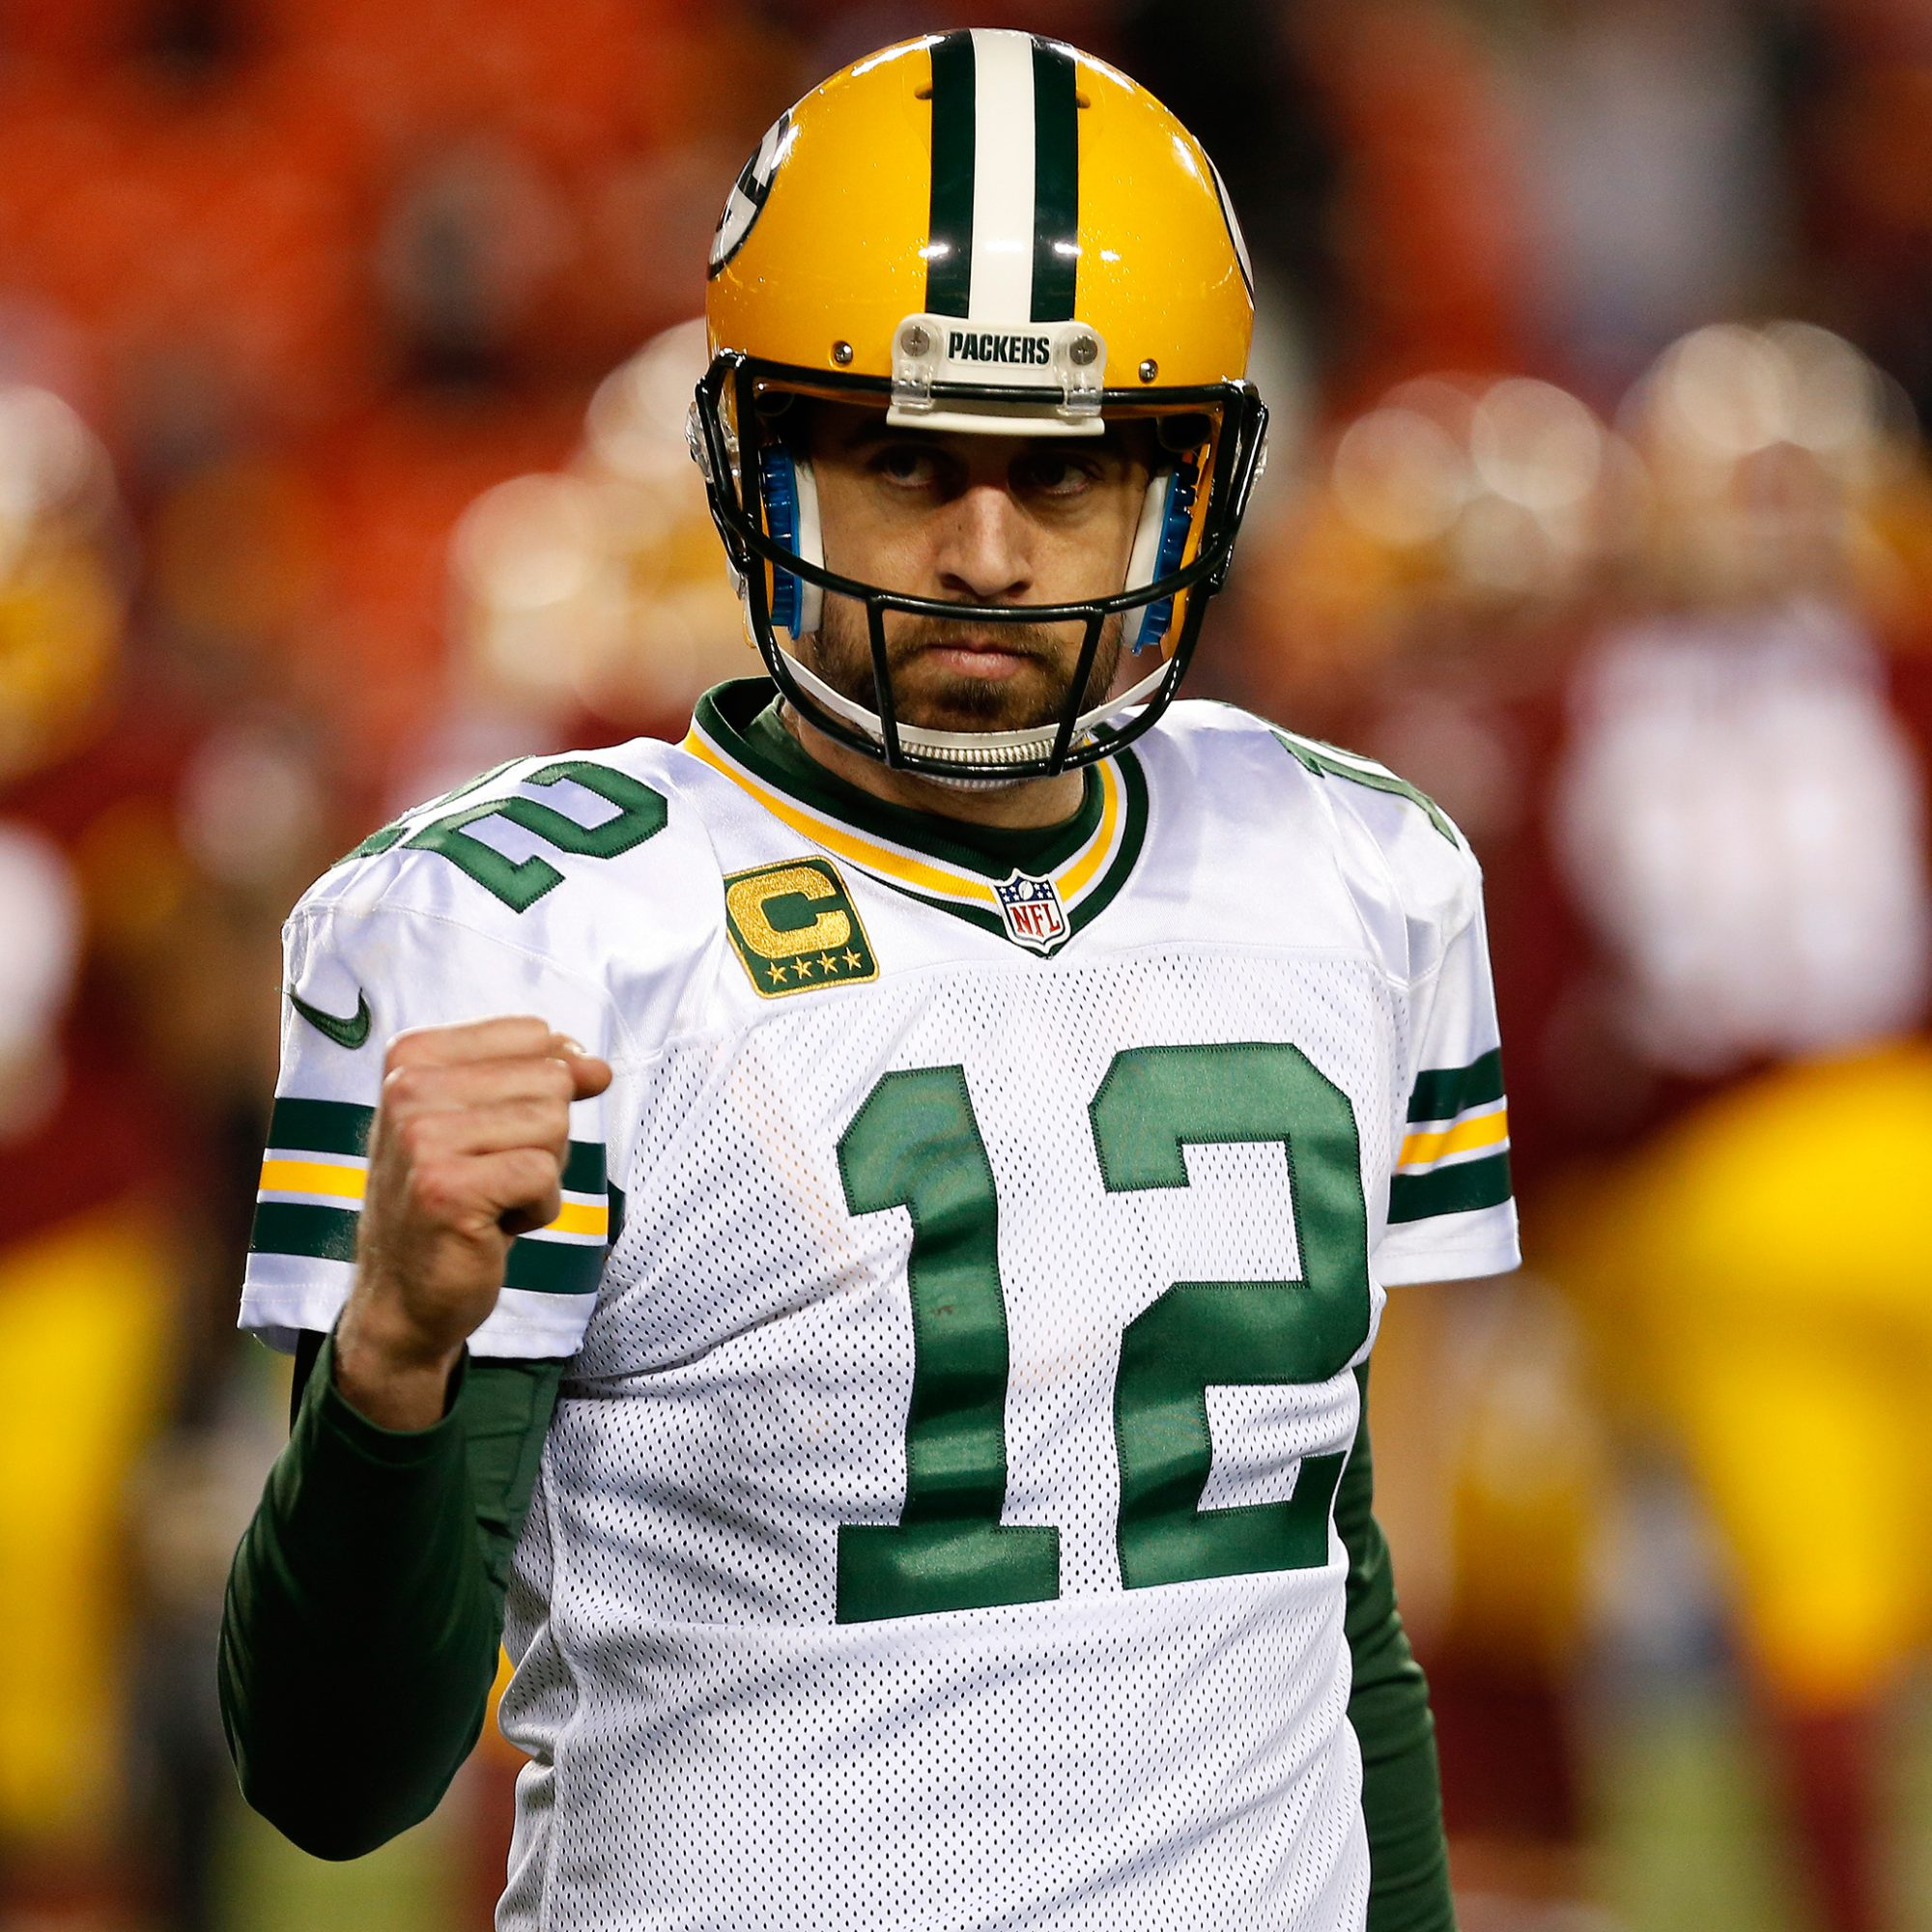 aaron-rodgers-gives-up-dairy-fwx